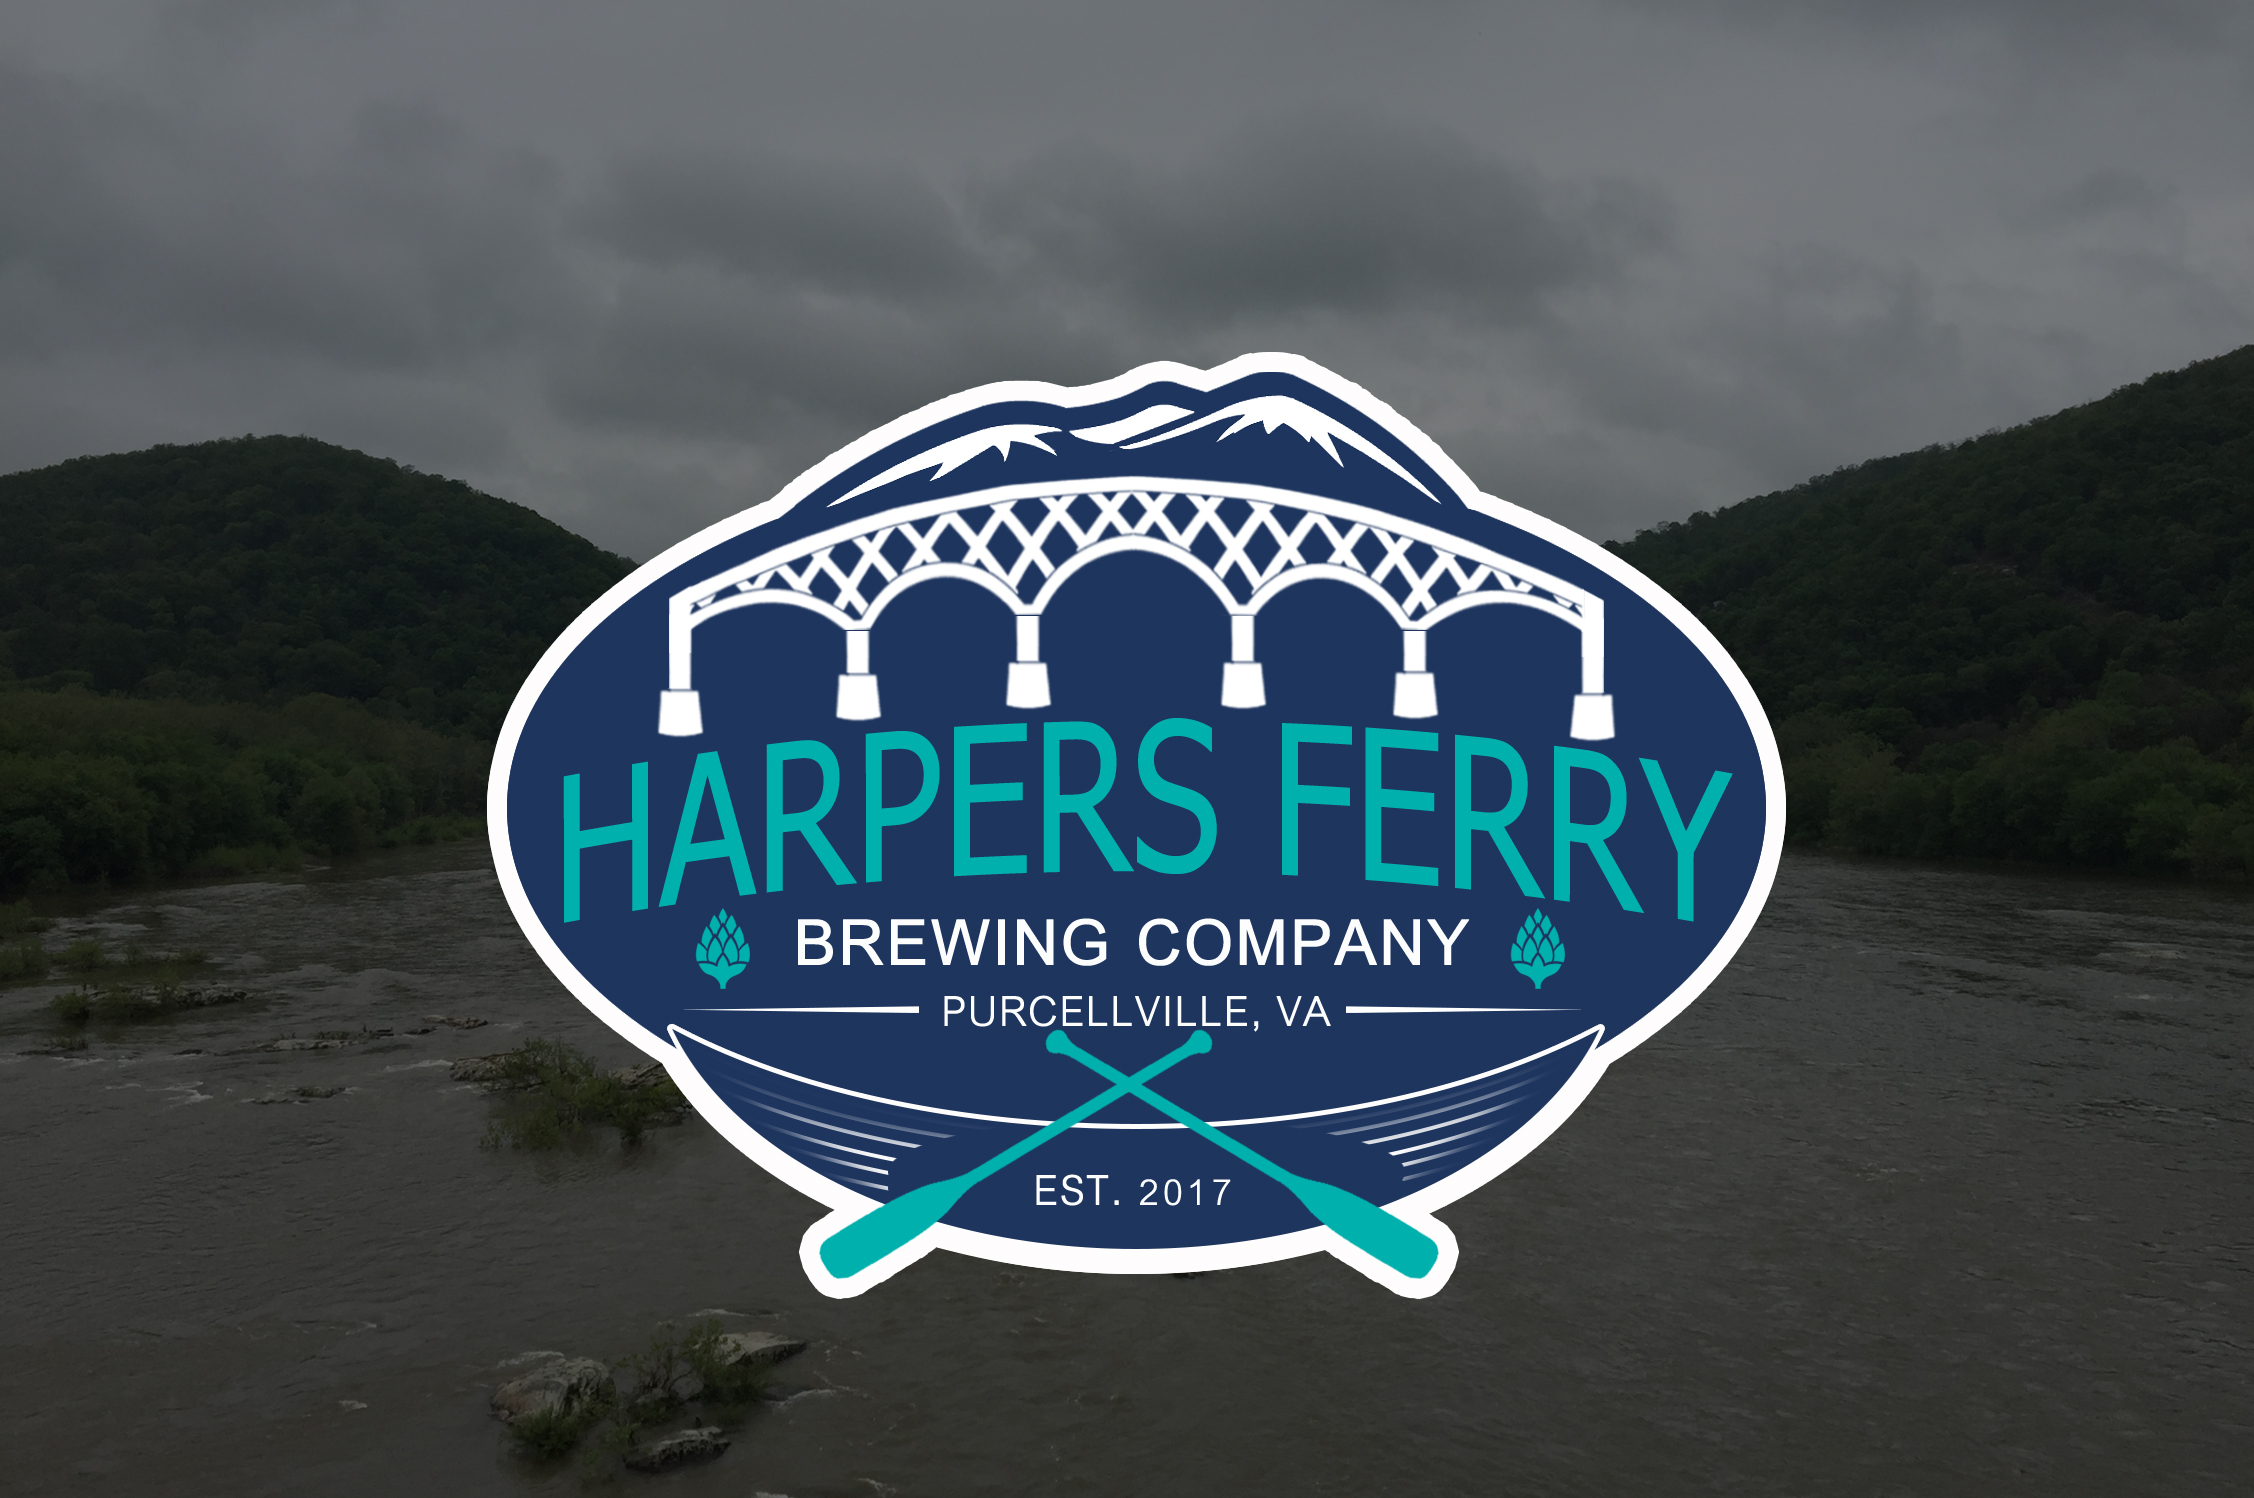 Logo Design by JSDESIGNGROUP - Entry No. 79 in the Logo Design Contest Unique Logo Design Wanted for Harpers ferry brewing company.